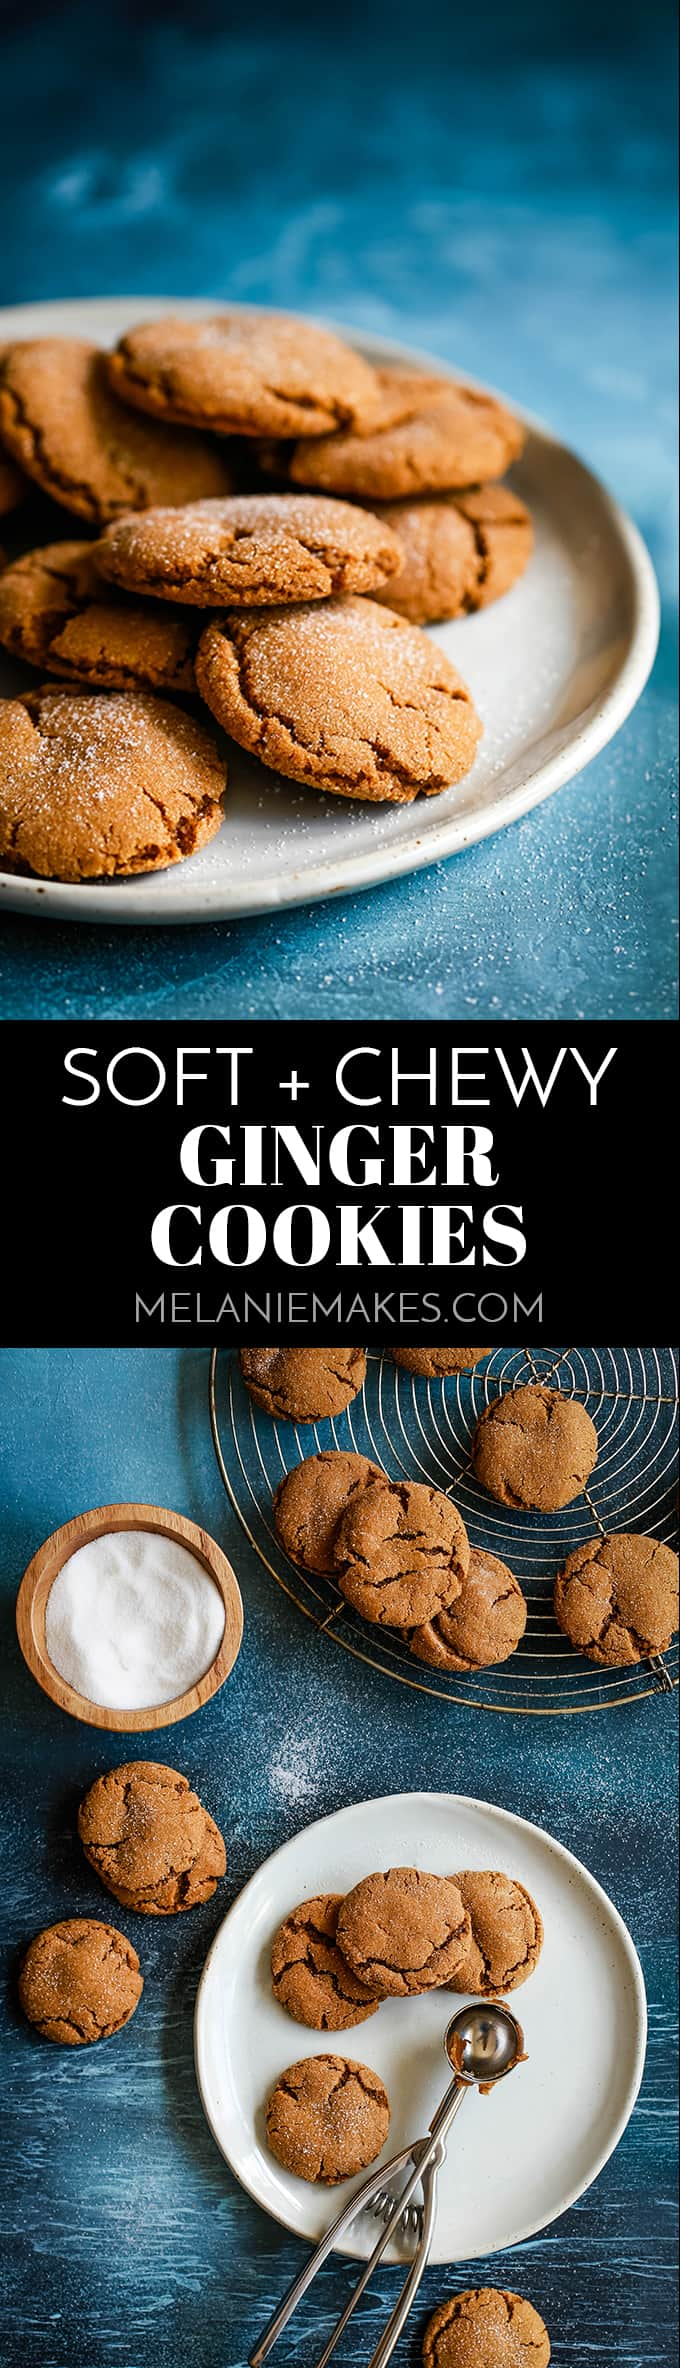 These Soft and Chewy Ginger Cookies melt have a melt in your mouth texture, while rolling them in sugar prior to baking gives them their specialty sparkle. #gingercookies #cookies #ginger #cookierecipes #christmas #christmascookies #soft